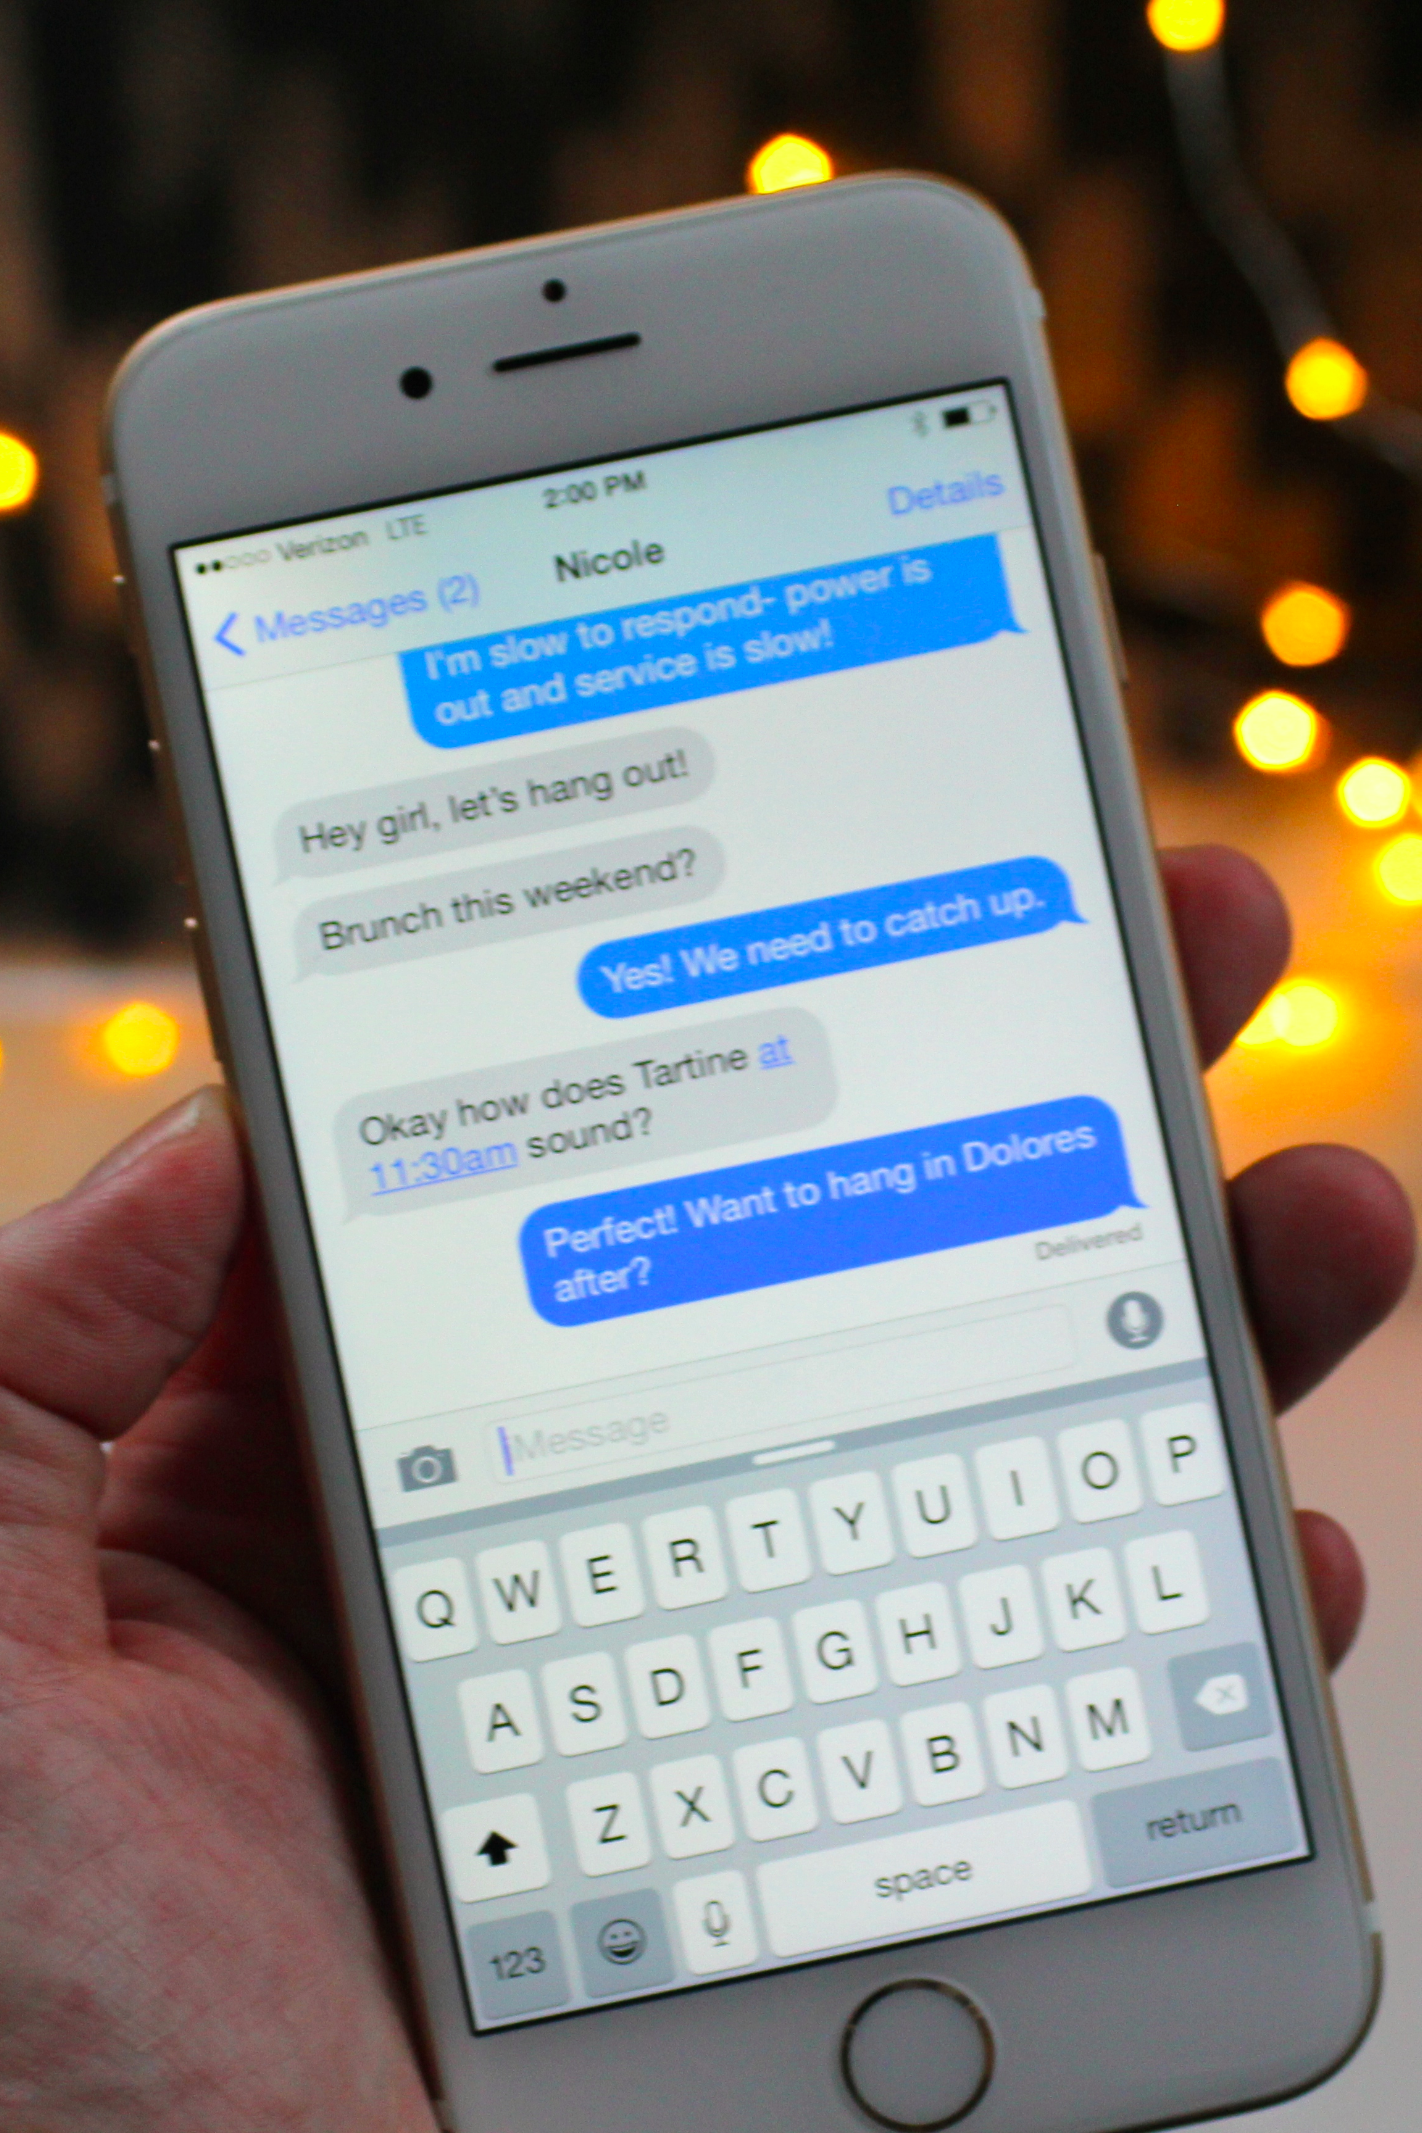 how to play 8 ball on iphone messages